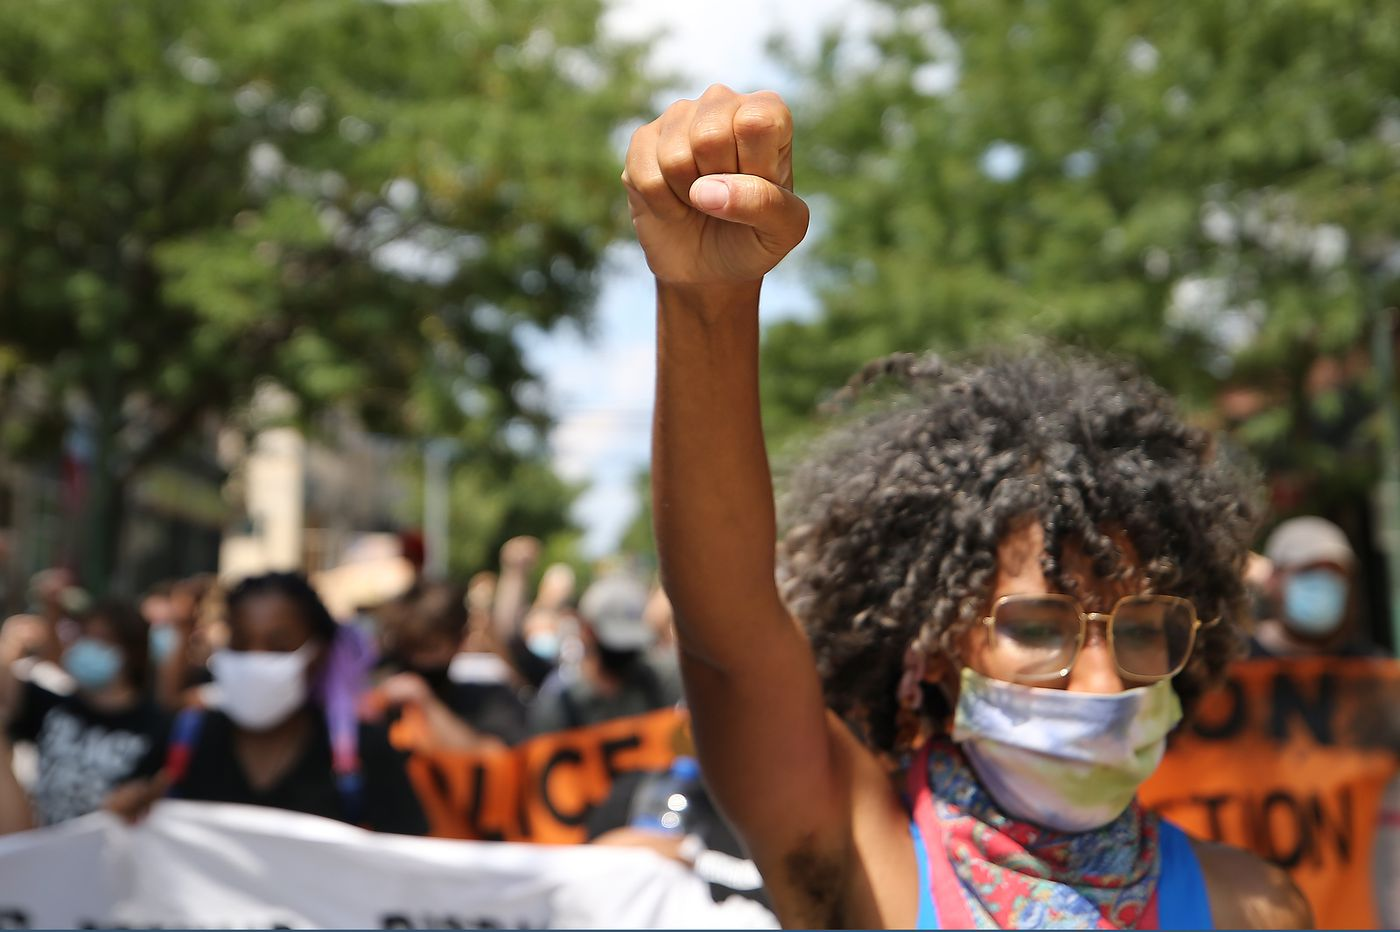 Community groups rally in West Philly to protest Penn, Drexel cops' presence at 52nd Street teargassing